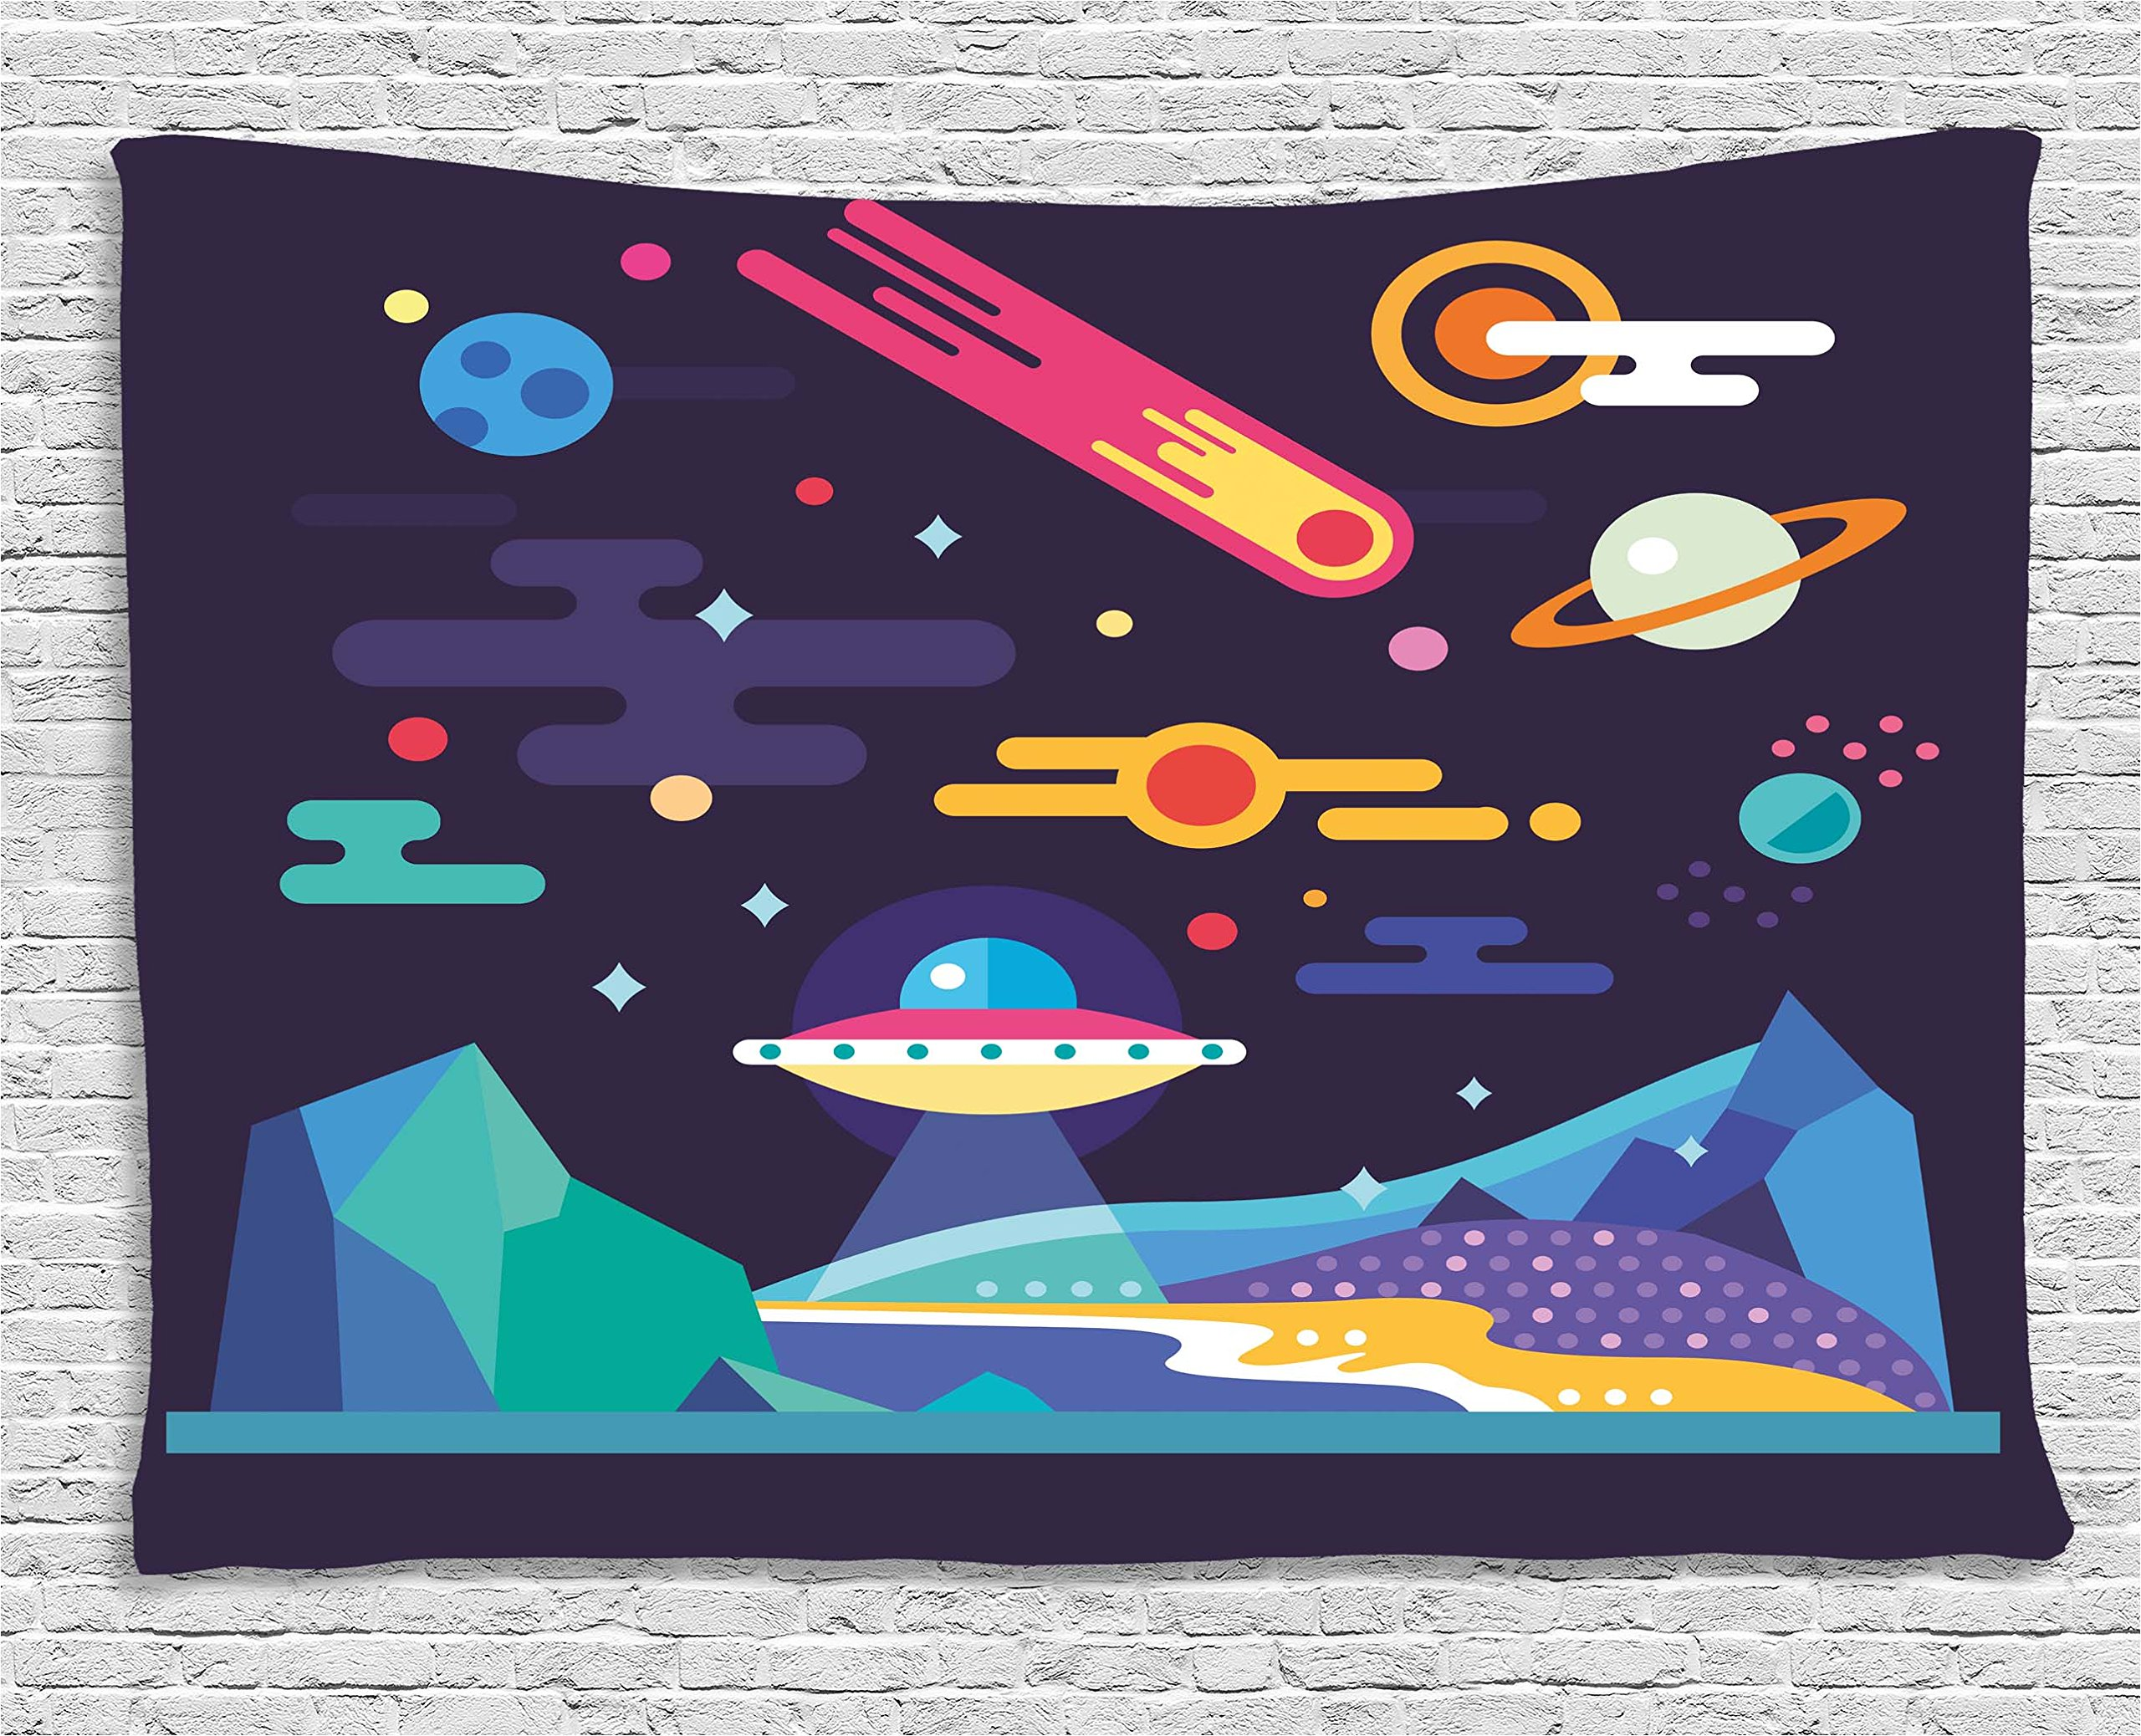 Ambesonne Space Tapestry, Galaxy Cosmos Universe Themed Solar System Stardust Comet UFO Planetary Illustration, Wall Hanging for Bedroom Living Room Dorm, 80WX60L inches, Multicolor